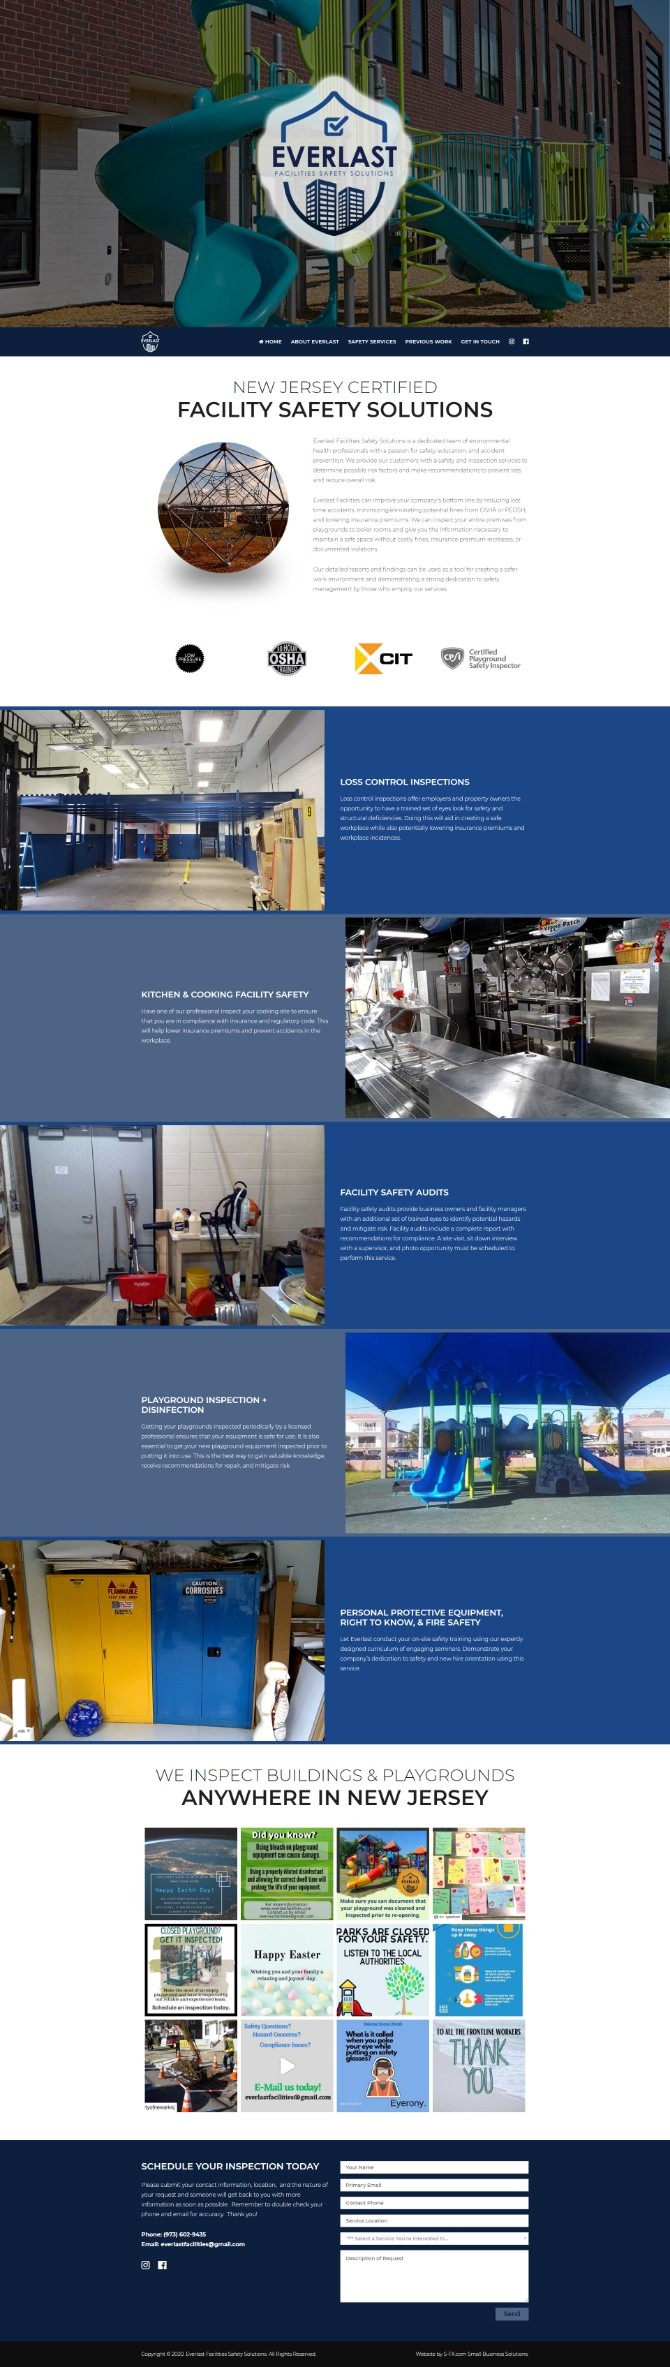 Everlast Facilities Safety Solutions